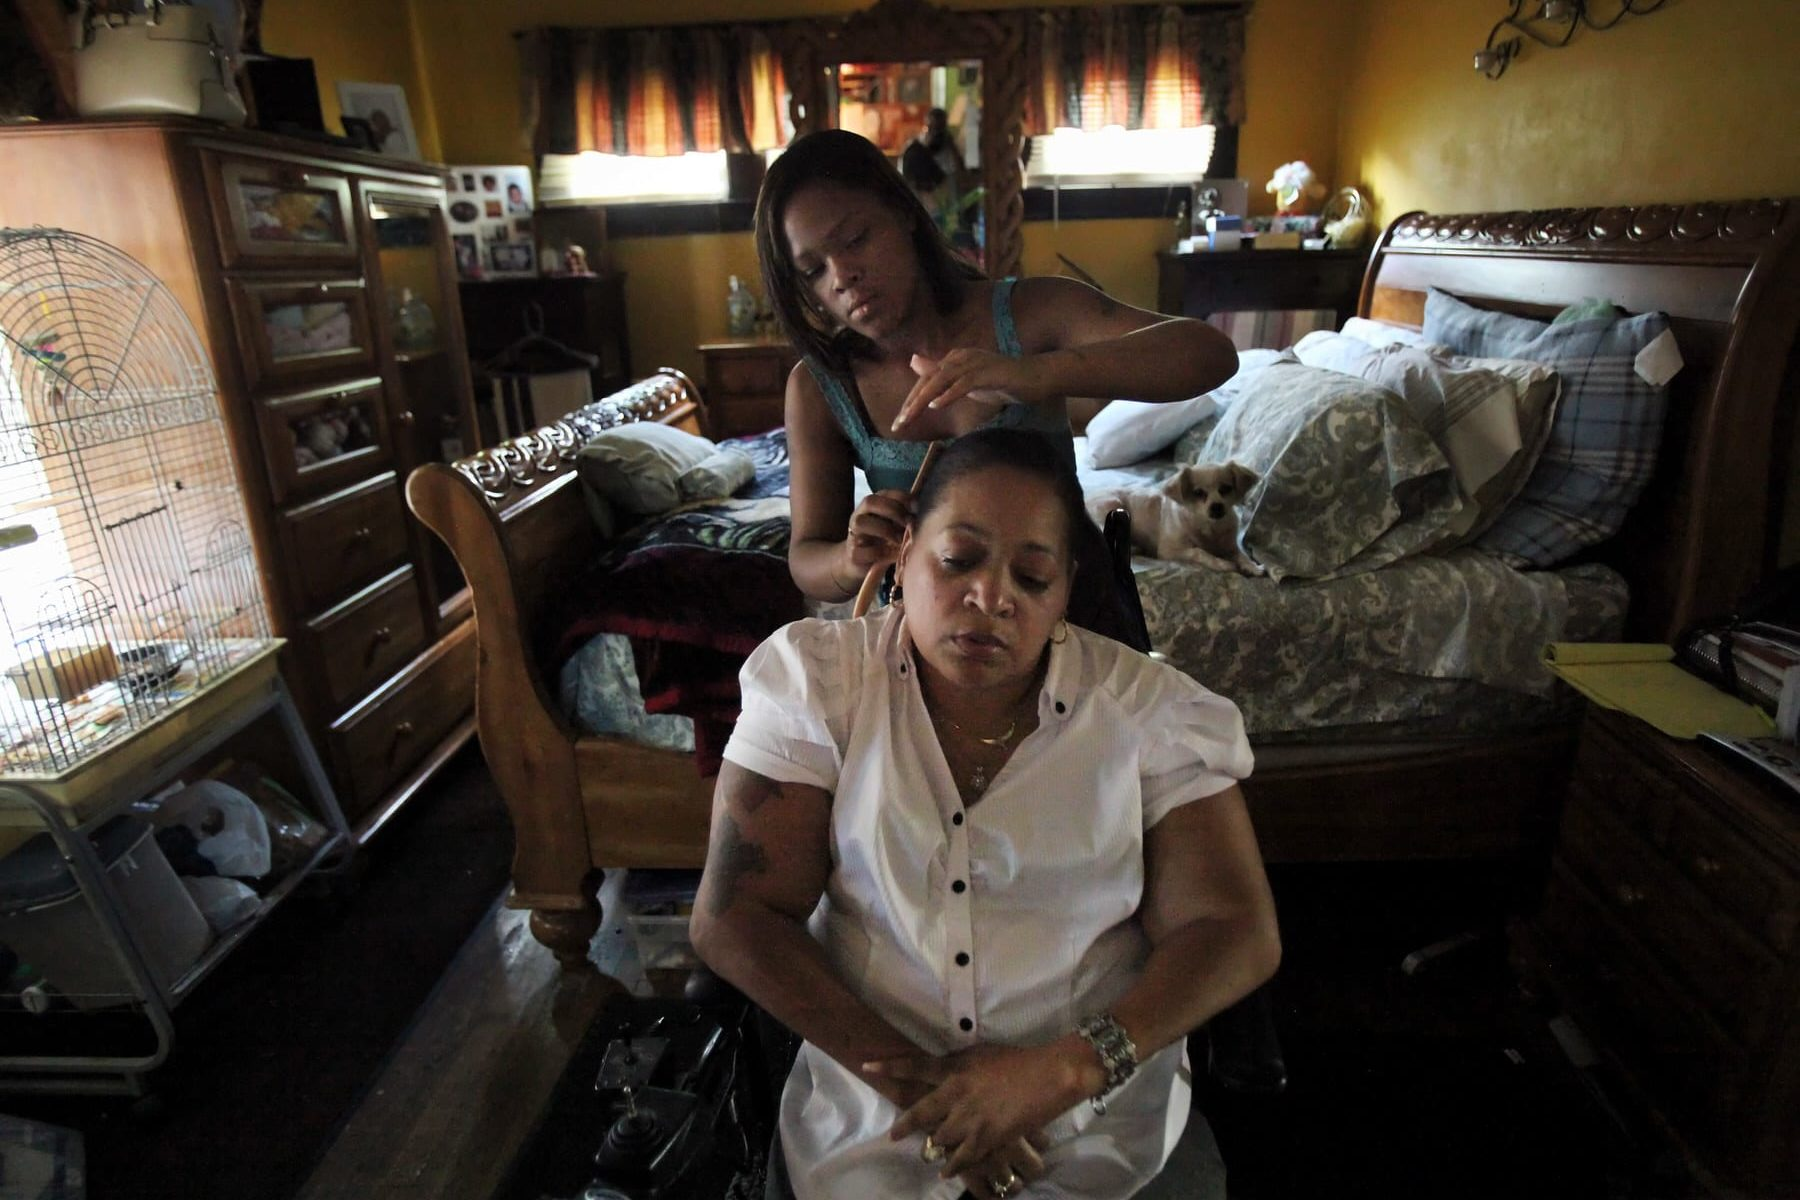 A home health aide brushes the hair of a patient in her home.